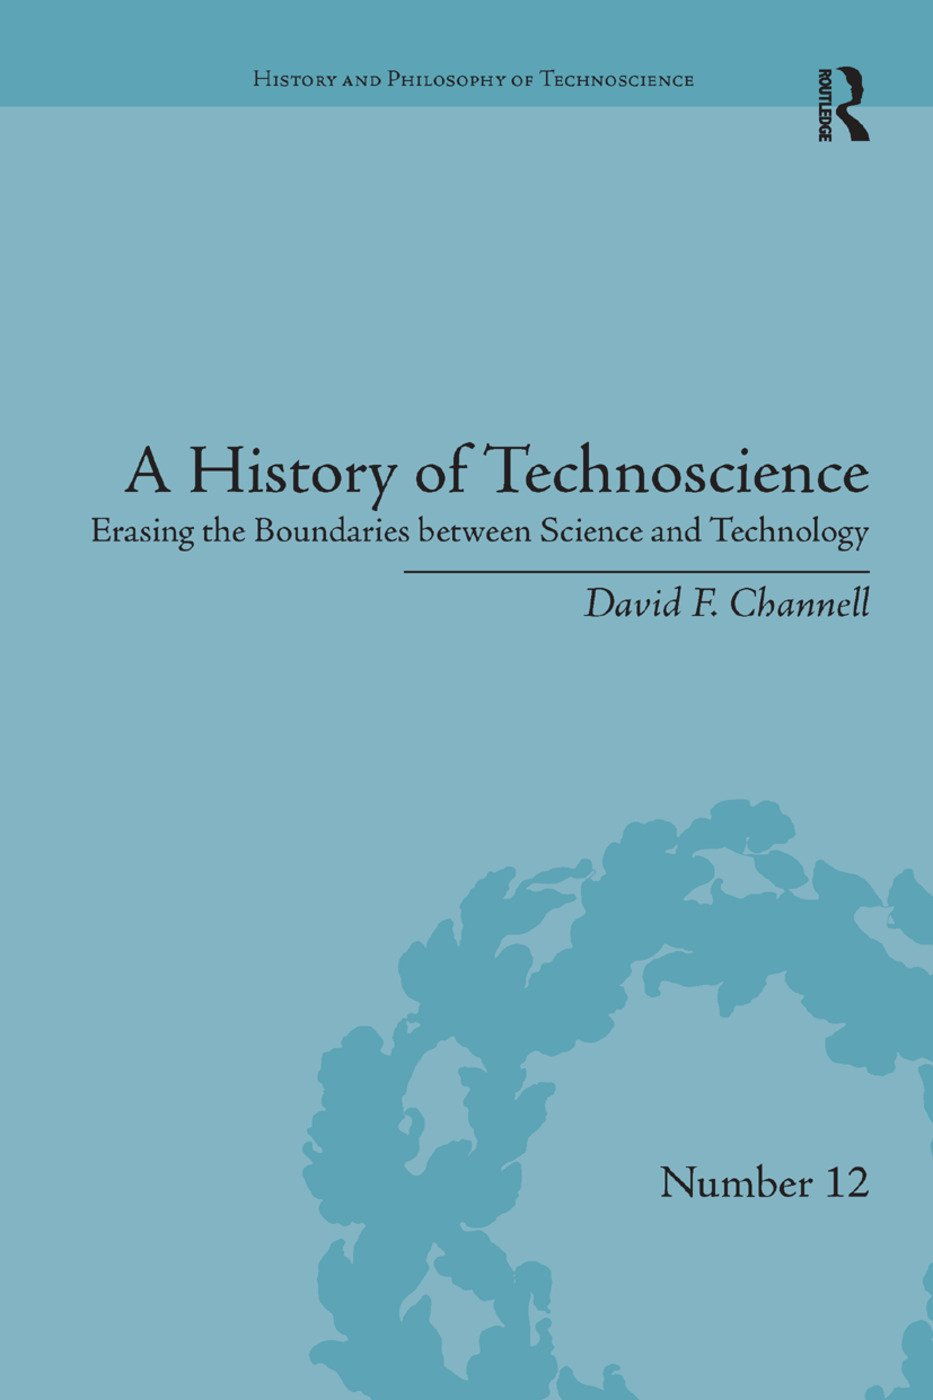 A History of Technoscience: Erasing the Boundaries between Science and Technology book cover